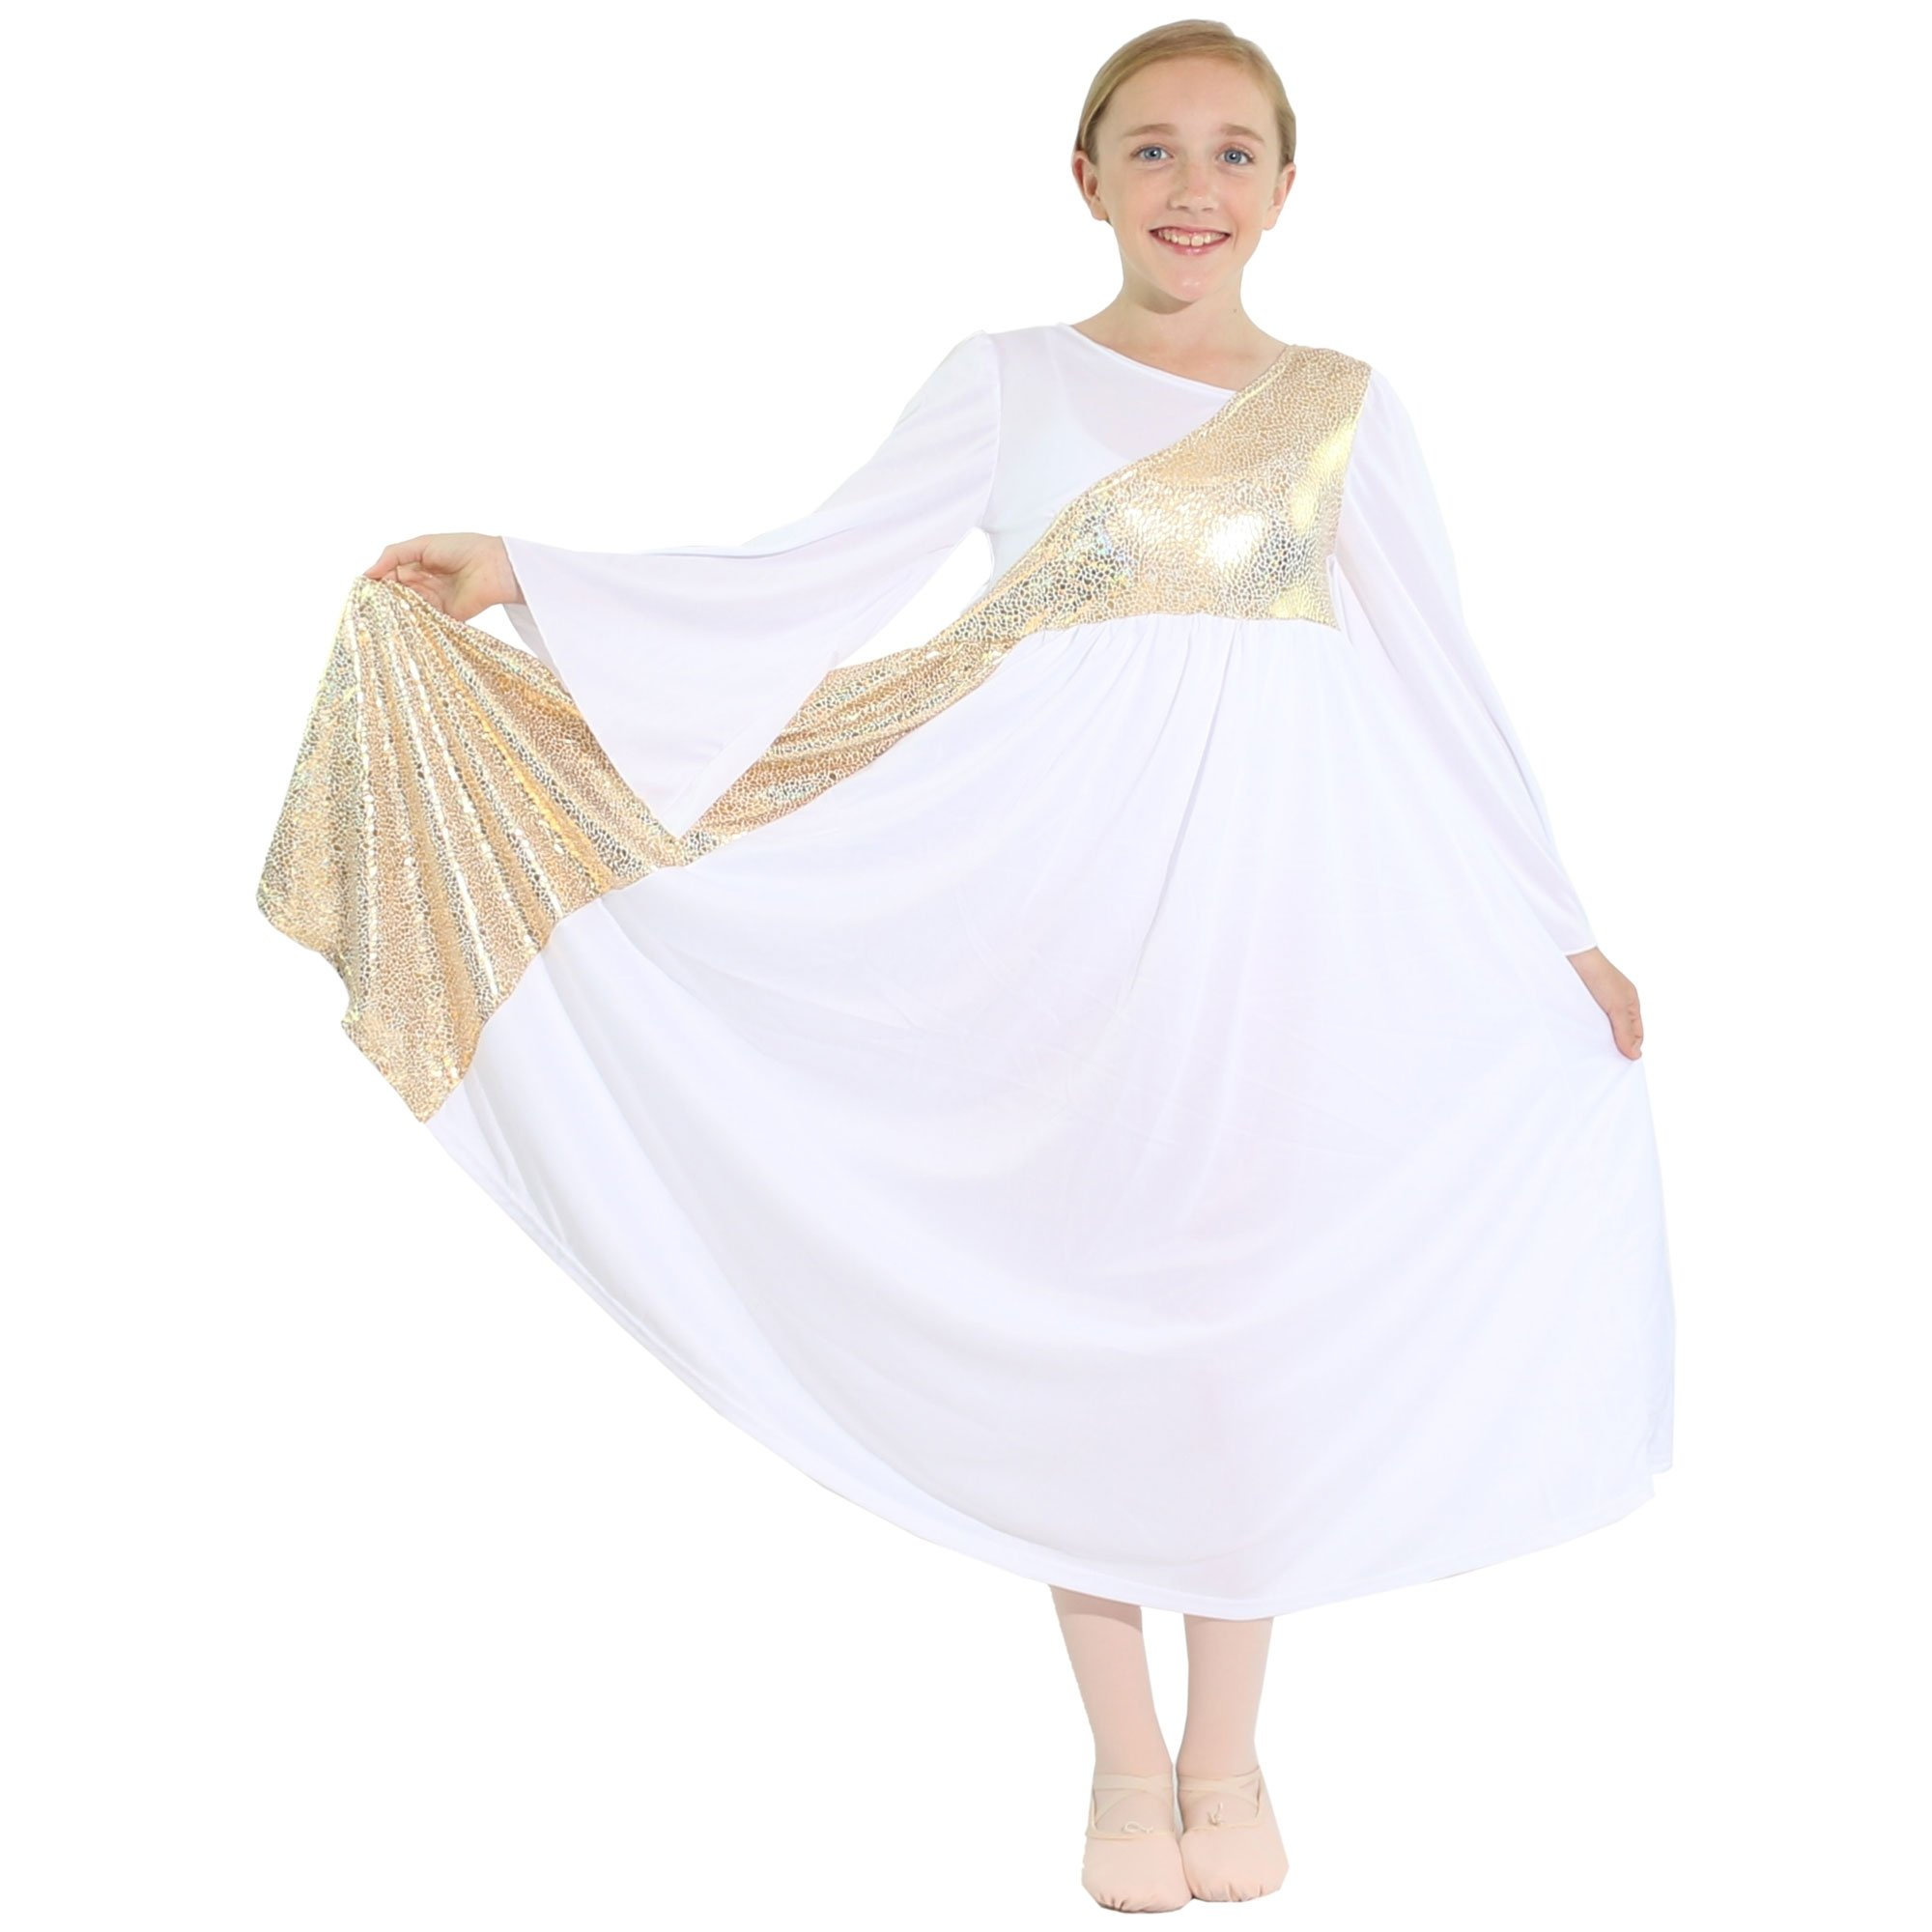 Danzcue Shimmery Asymmetrical Bell Sleeve Child Praise Dance Dress